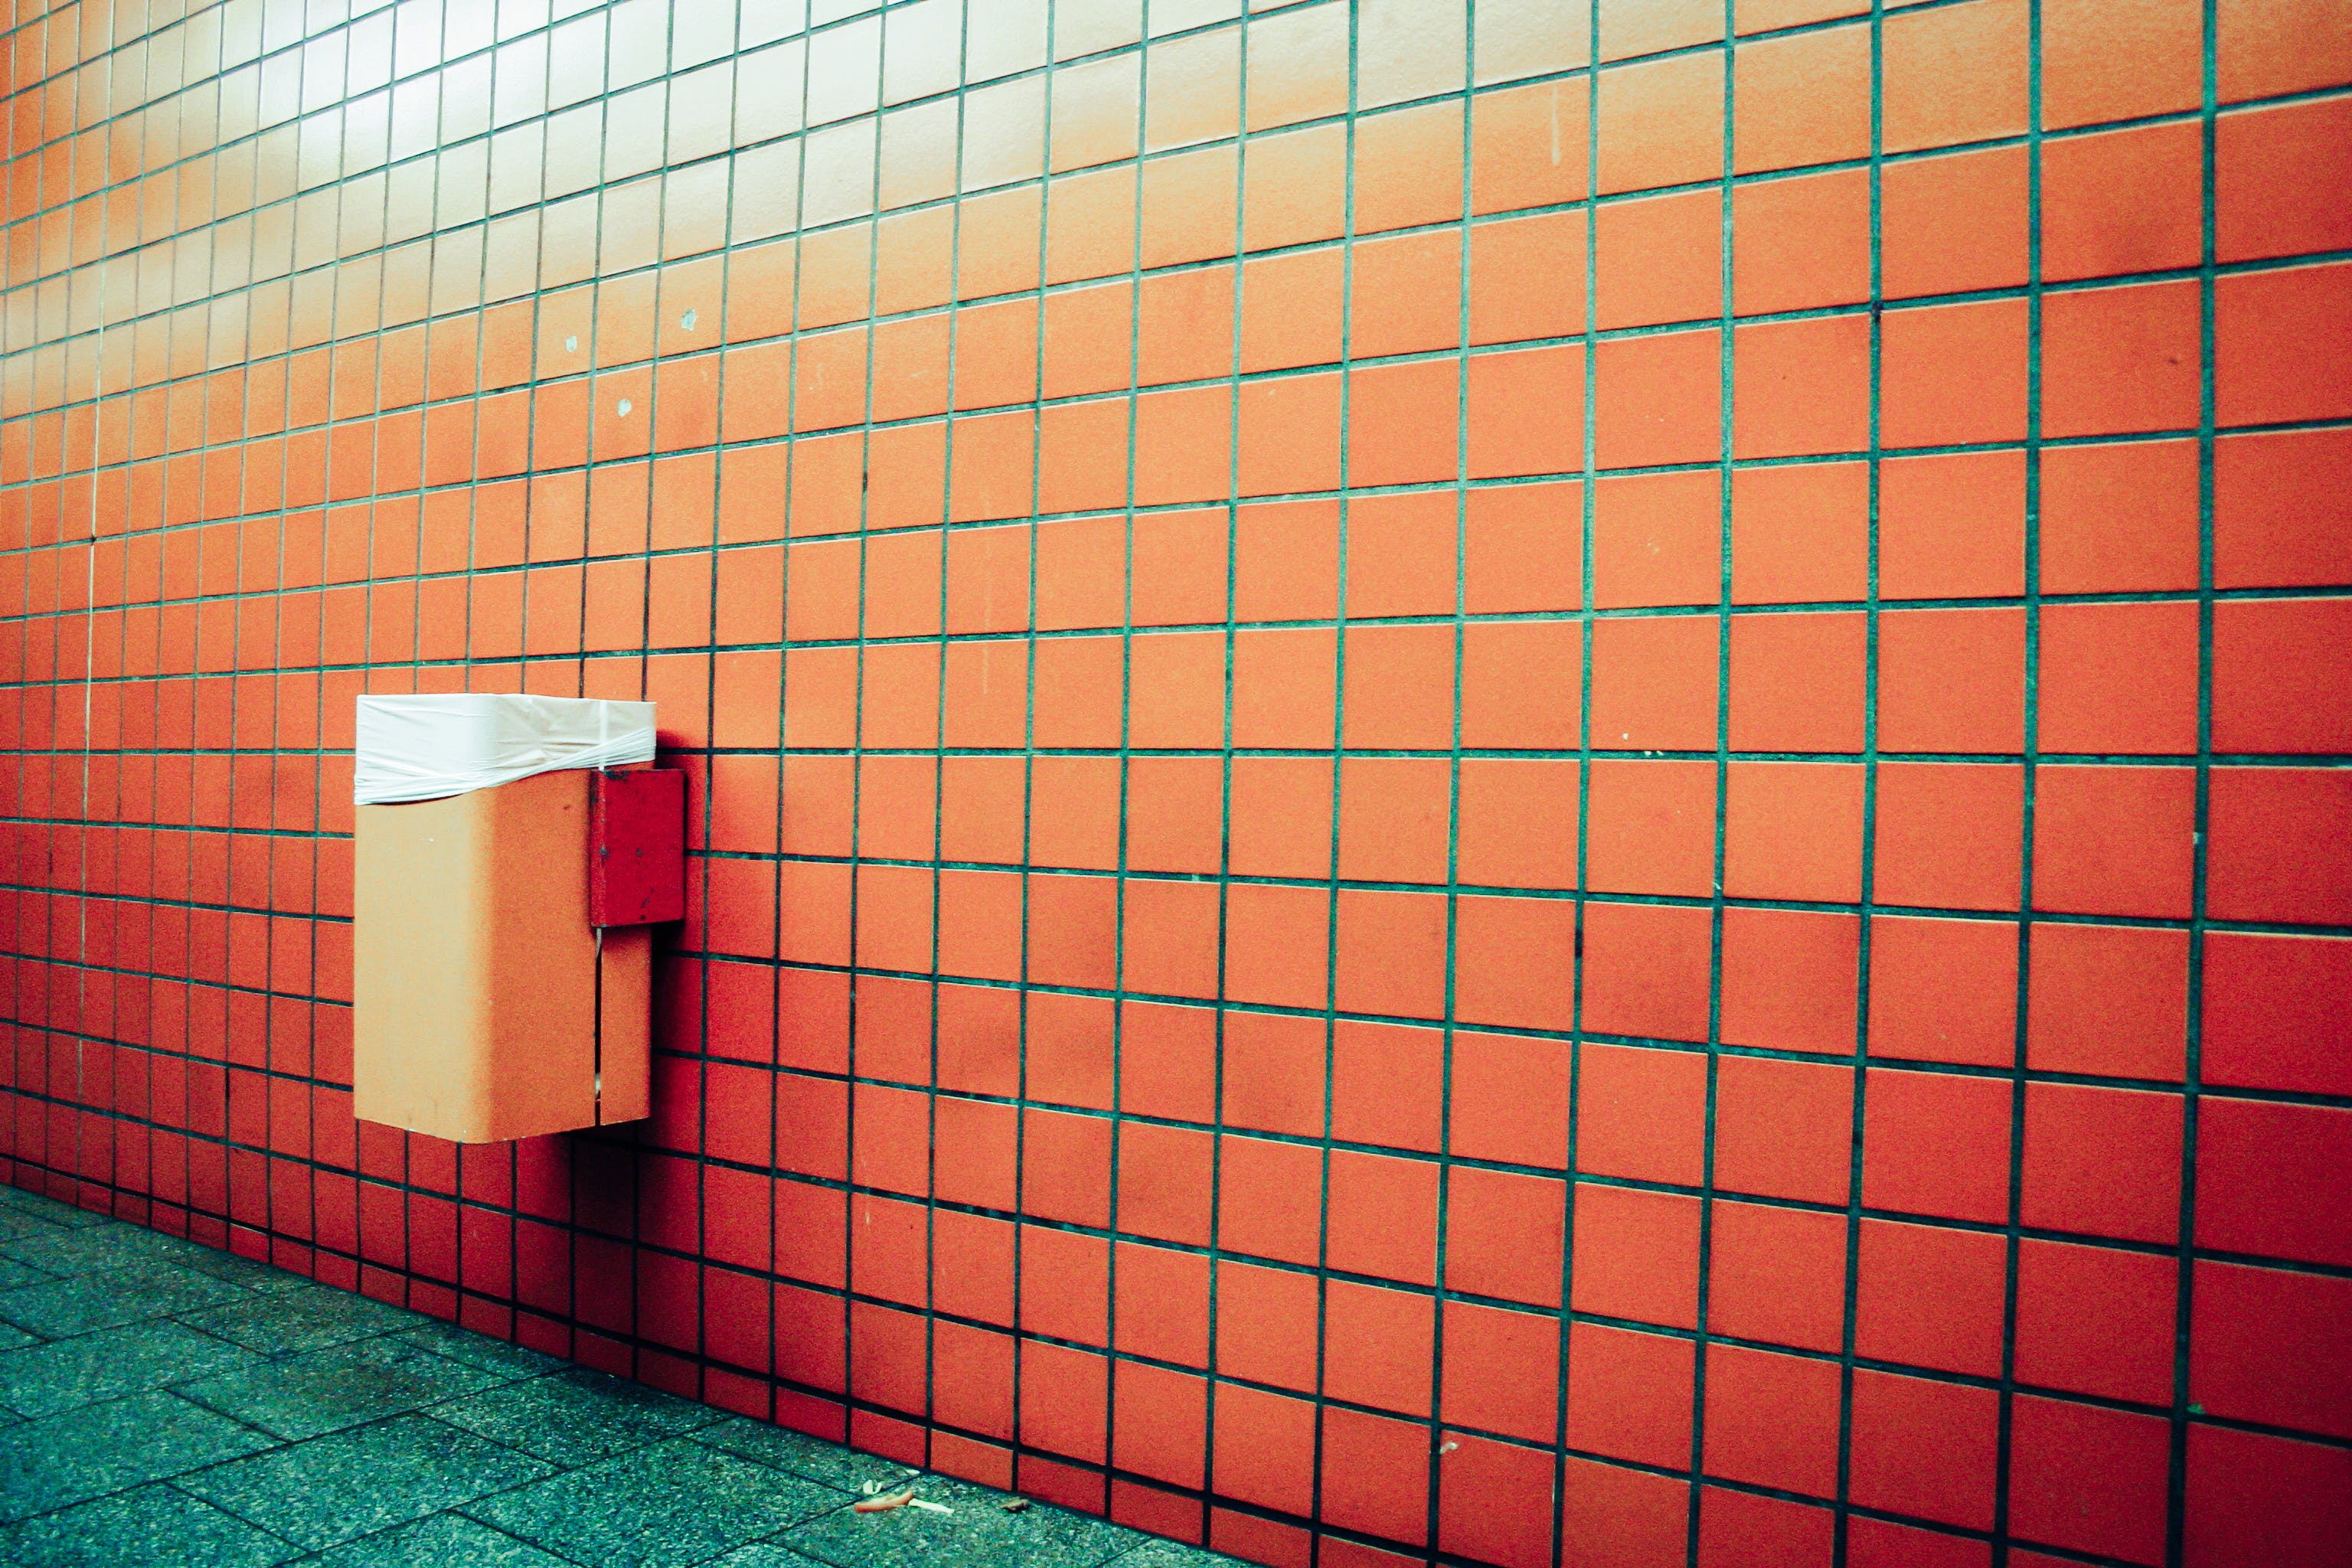 Free stock photo of wall, tiles, floor, garbage